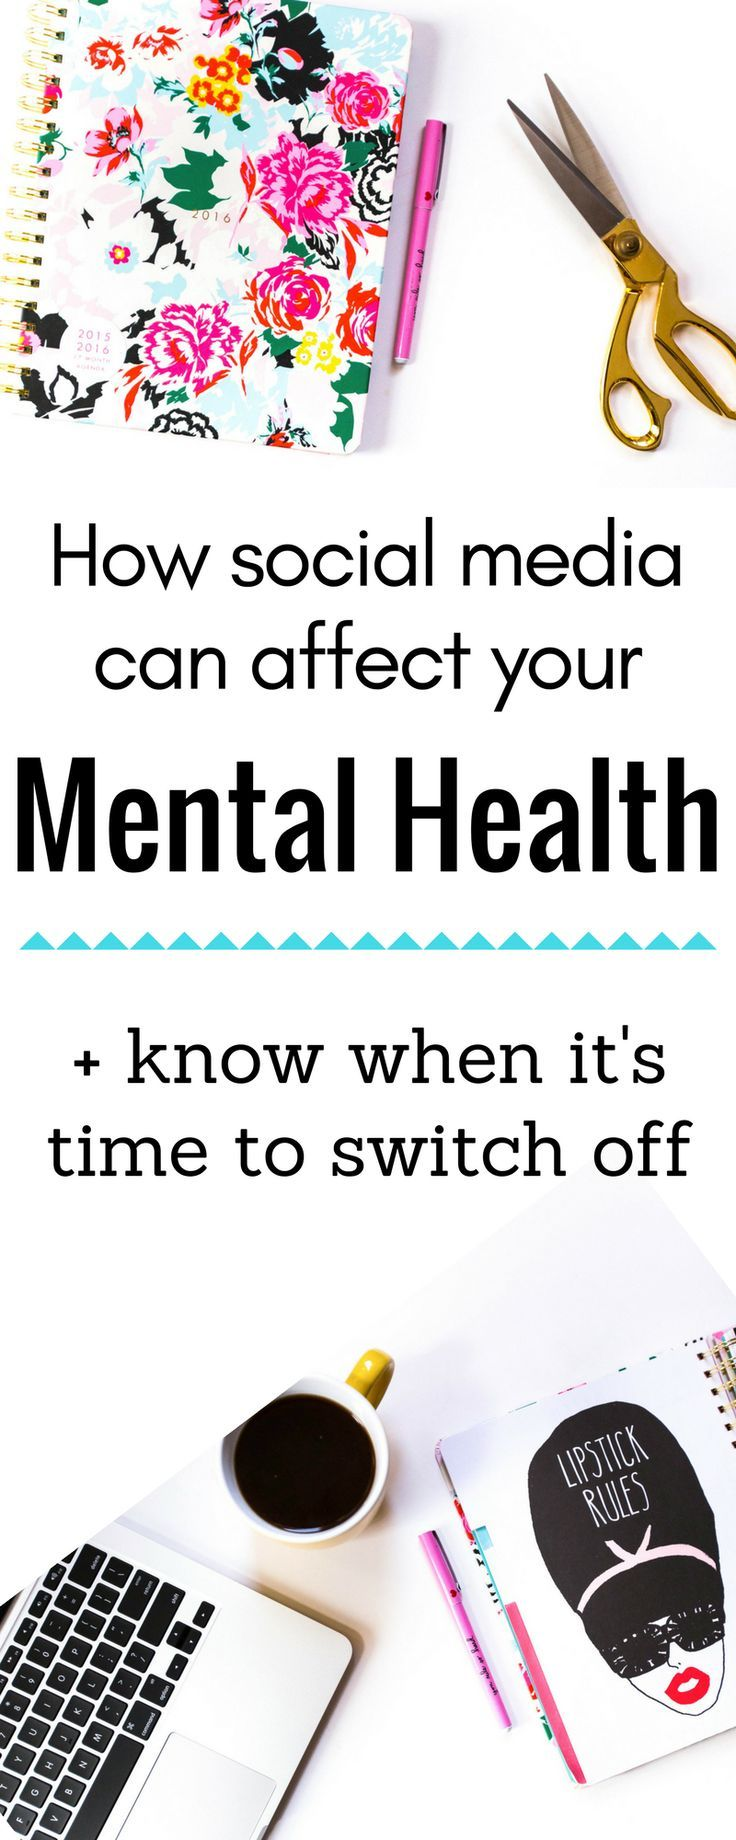 How social media can affect your mental health and why I'm sick of it